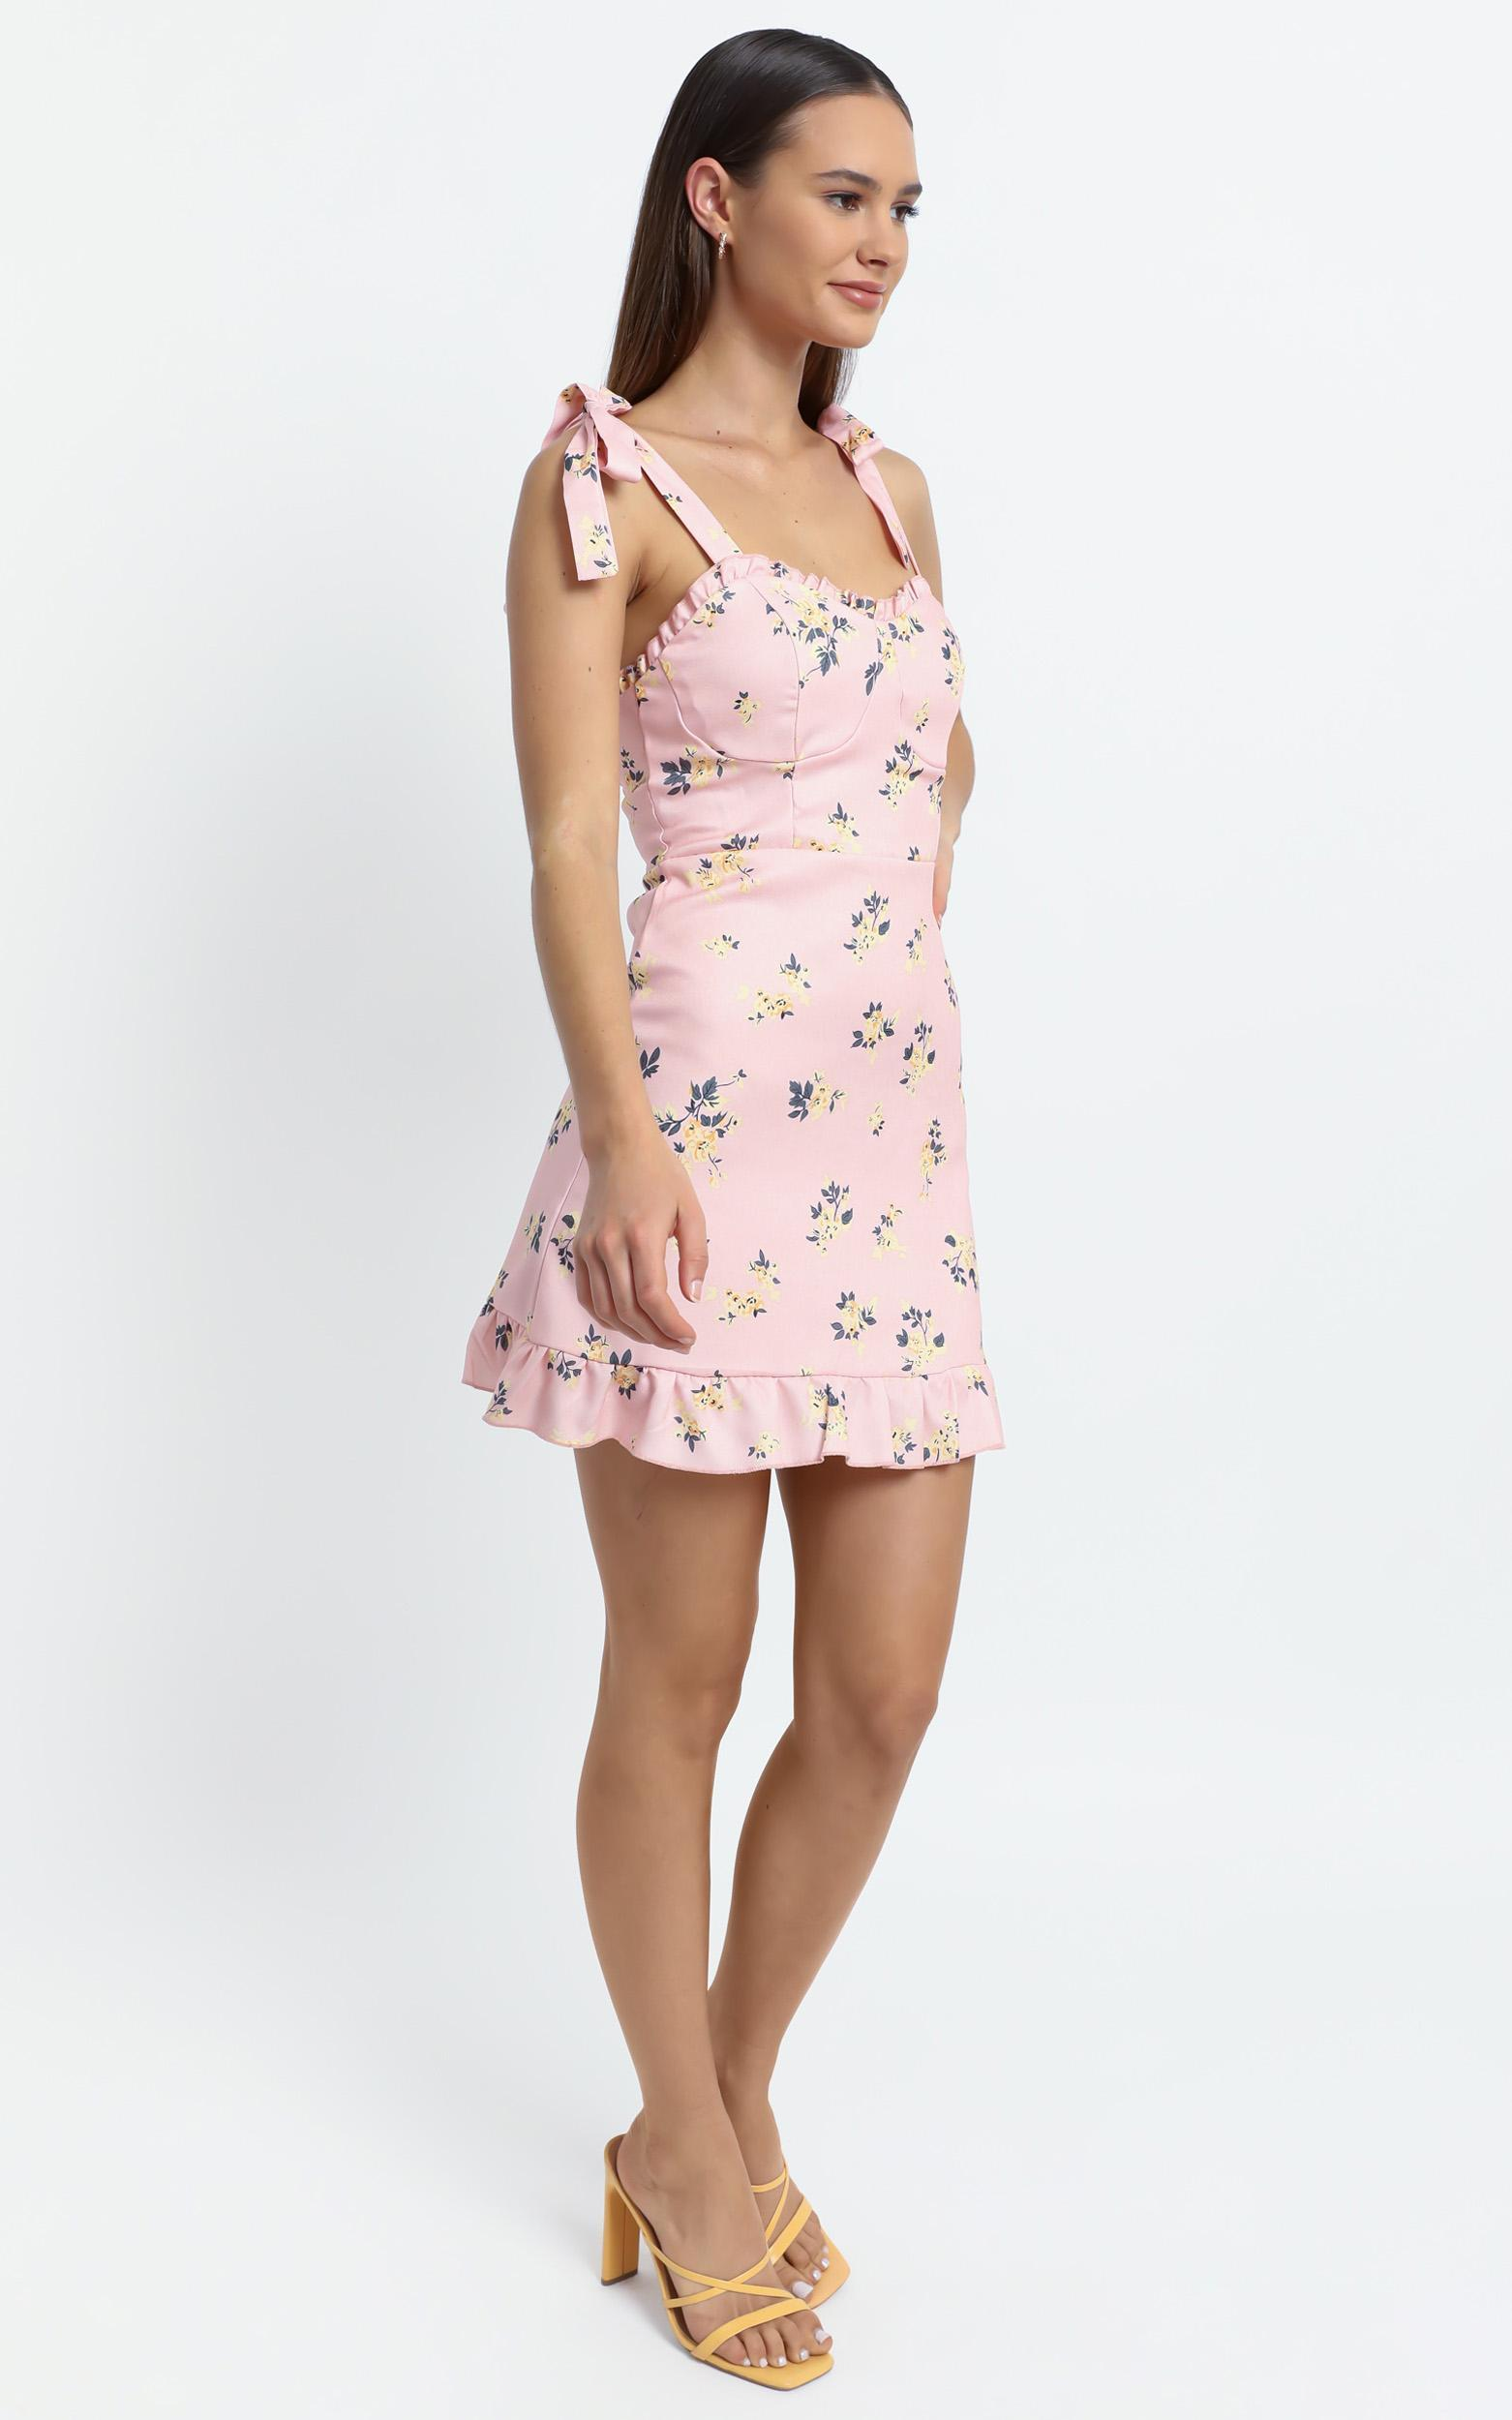 Zoelle Dress in Pink Floral - 8 (S), Pink, hi-res image number null